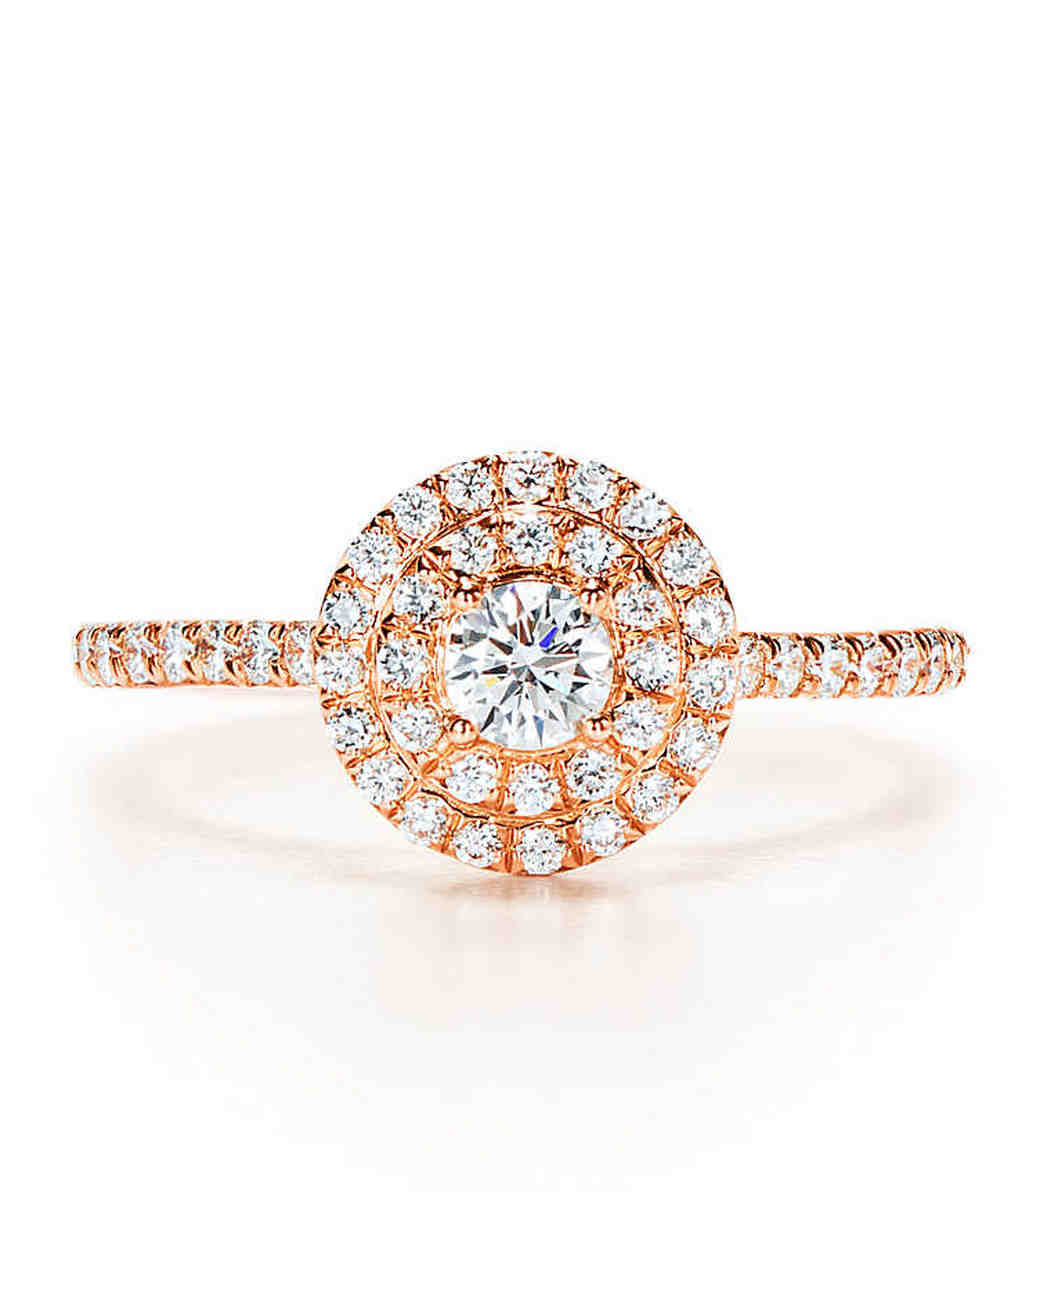 Tiffany & Co Rose Gold Engagement Ring with Diamond Halo and Shank